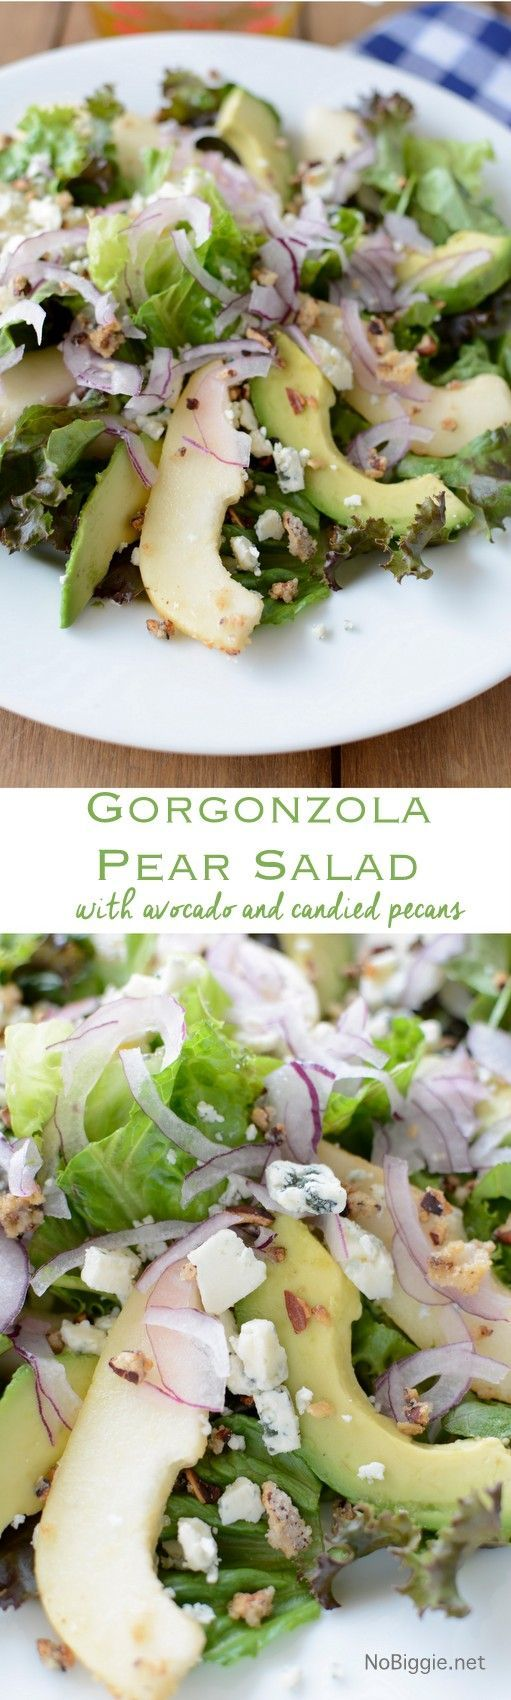 Gorgonzola Pear Salad with candied pecans | NoBiggie.net